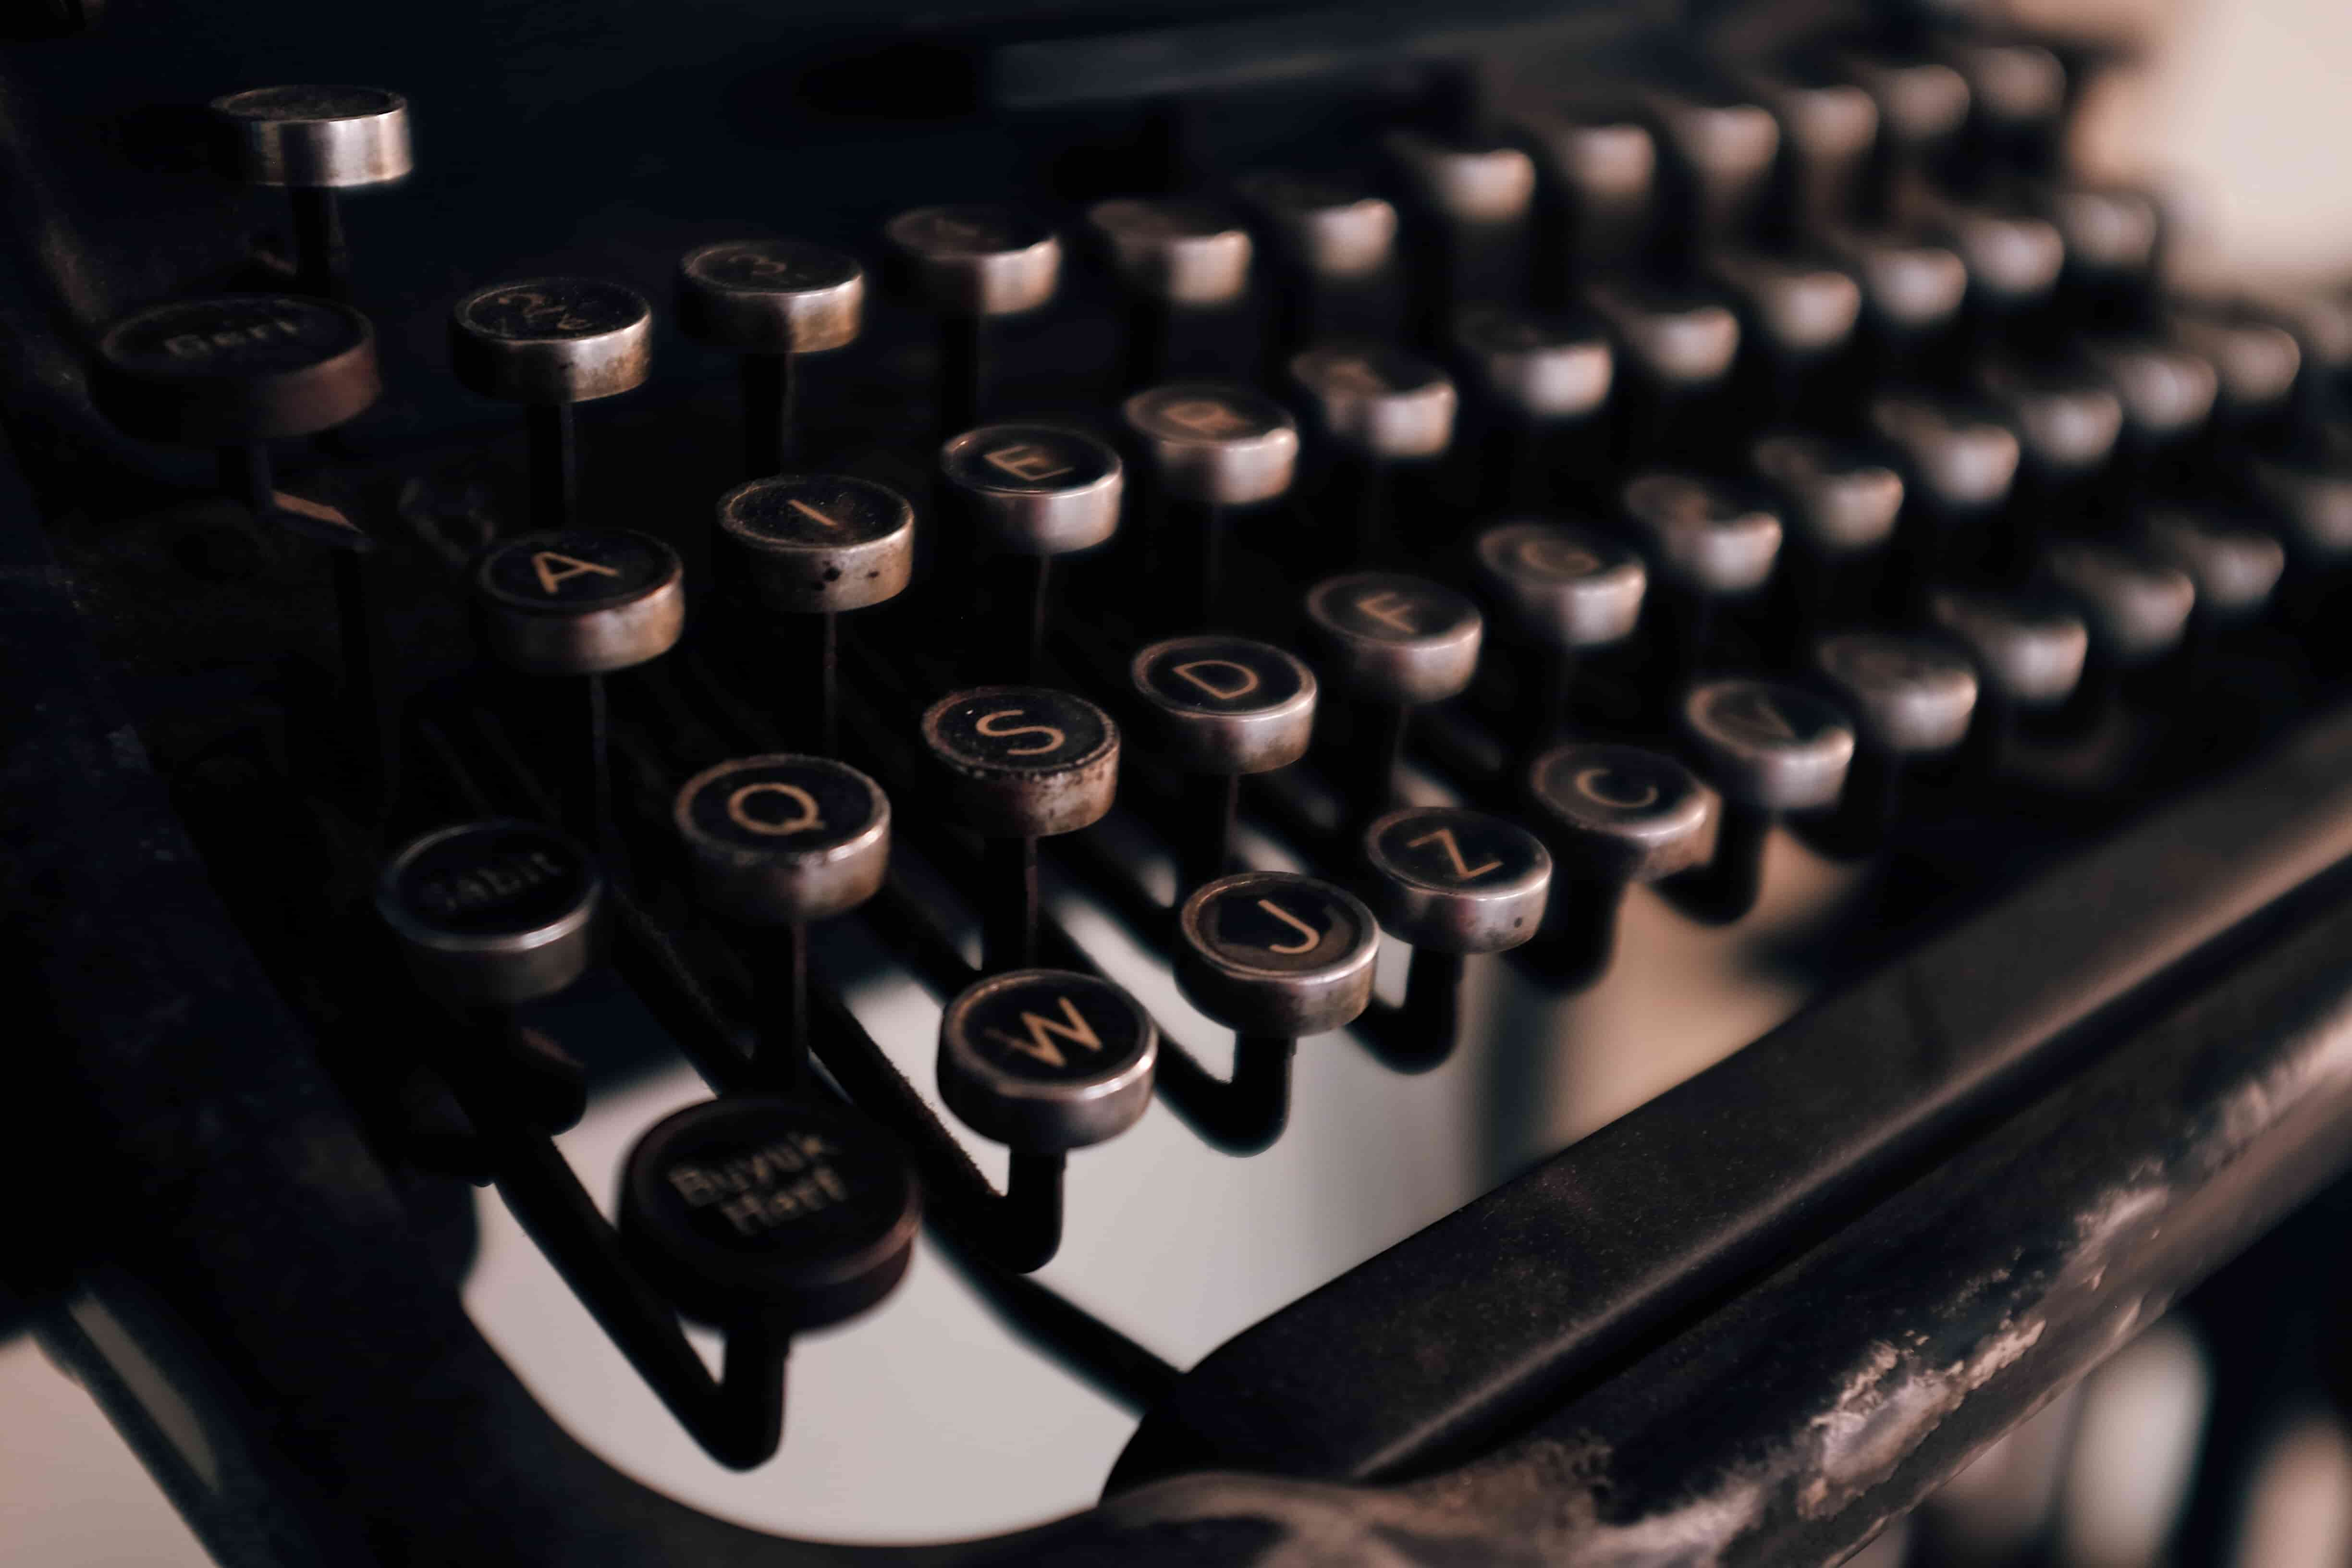 Typewriters are an antiquated way to transcribe and write copy